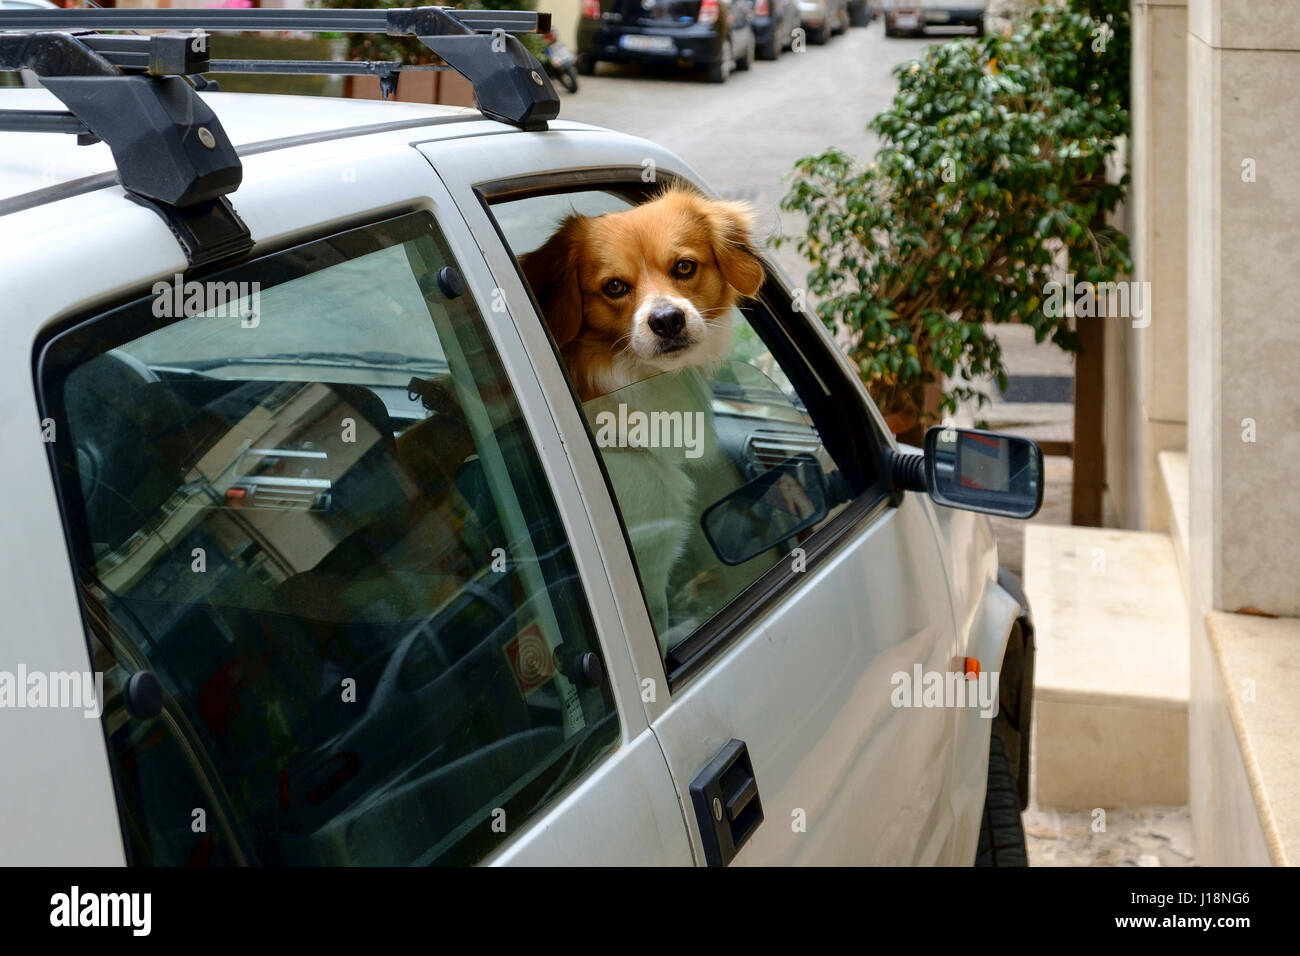 pet dog looking out car window - Stock Image